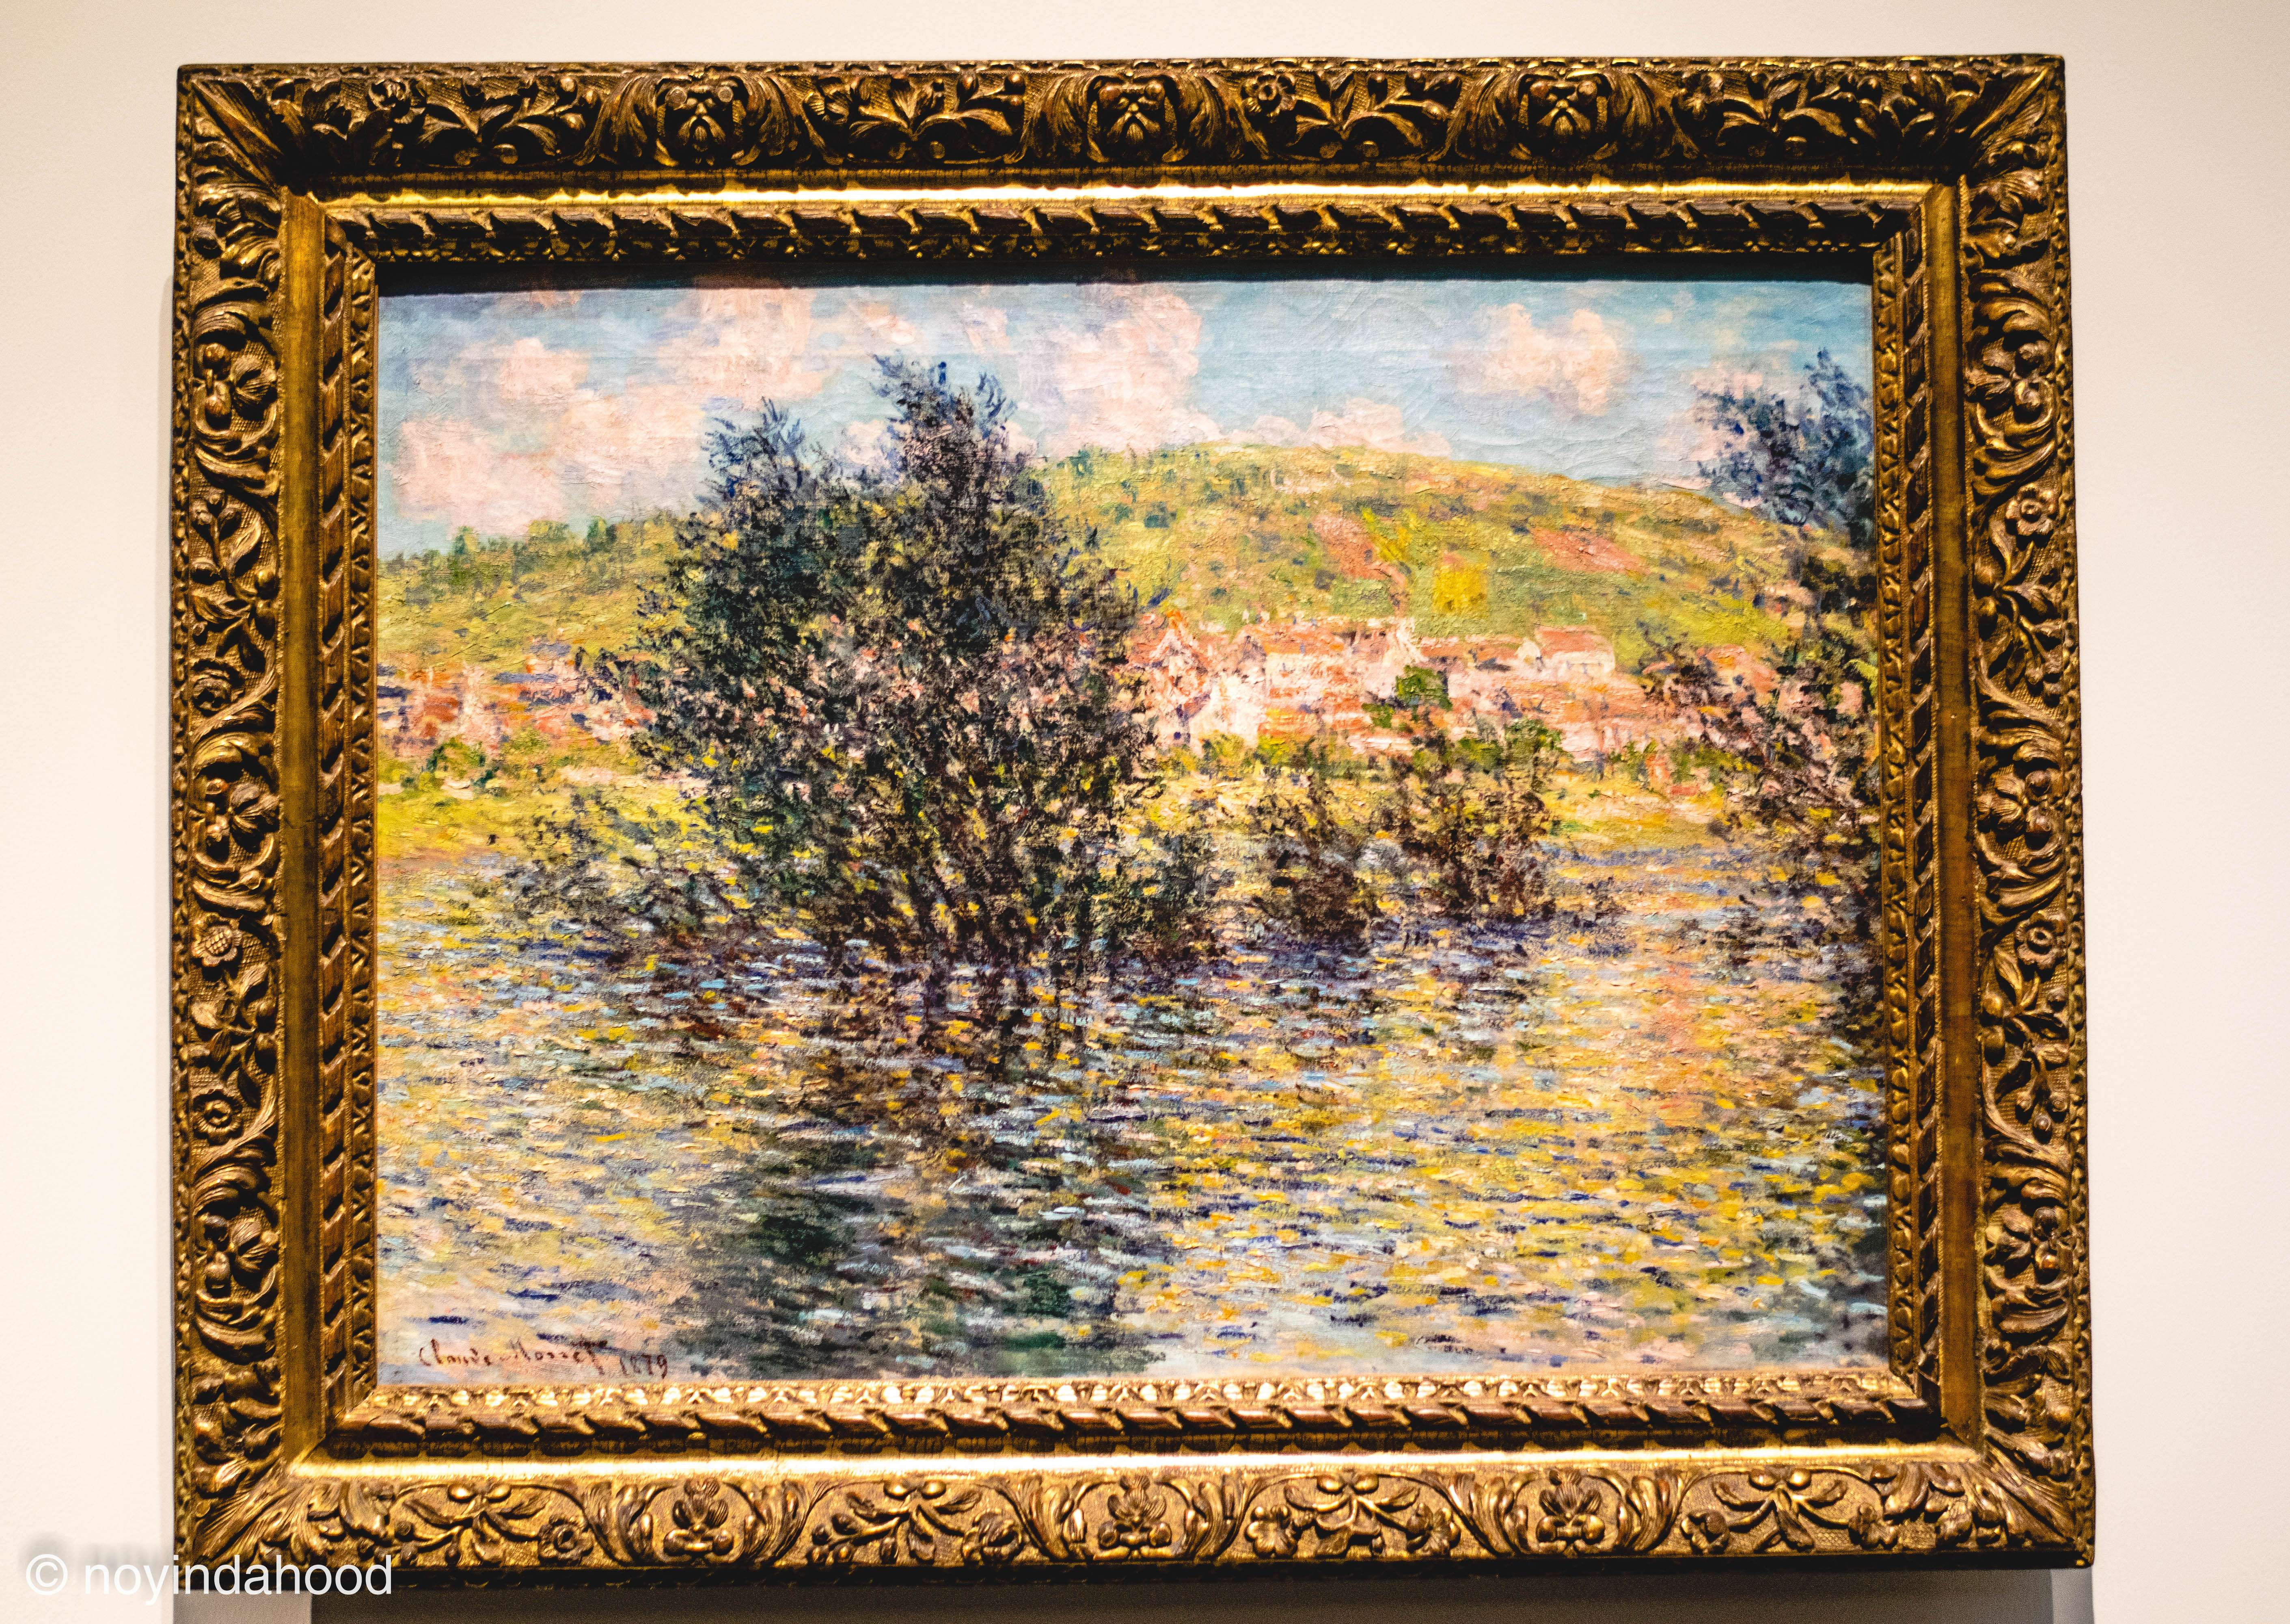 monet-impressionist-painting-louvre-abu-dhabi-museum